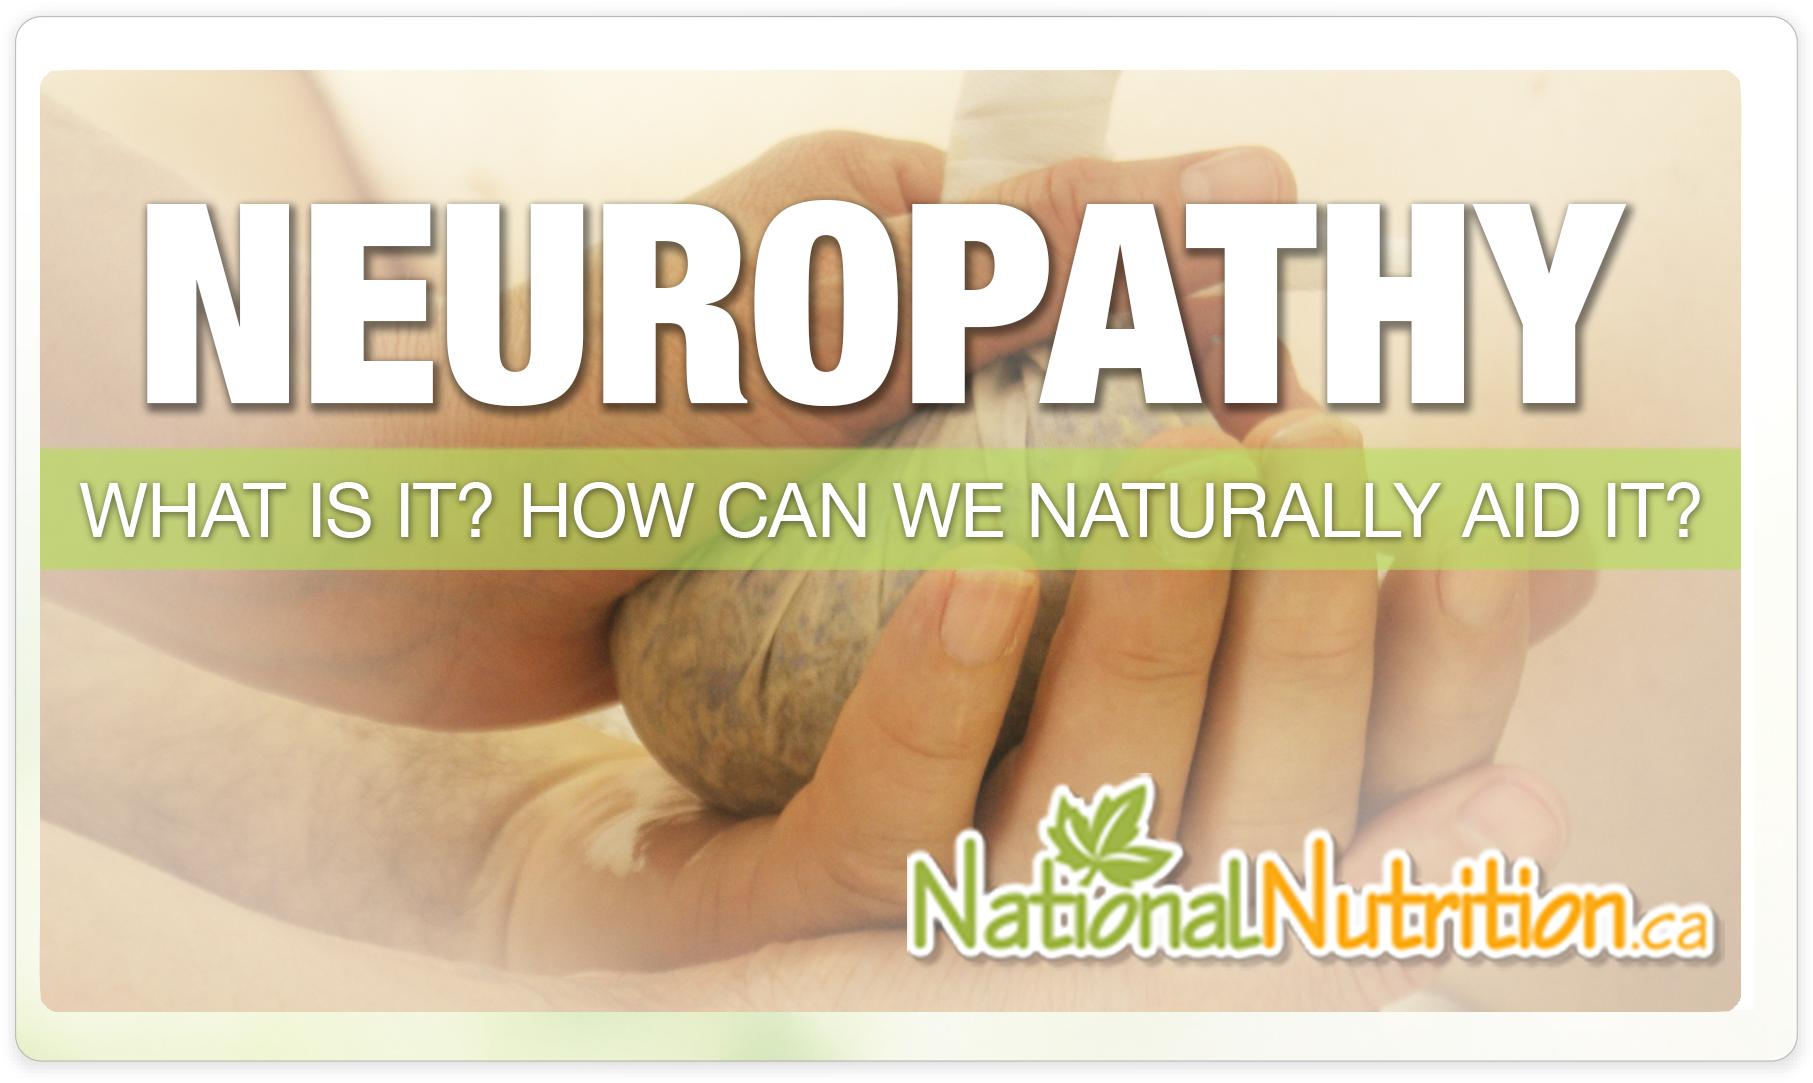 Neuropathy - National Nutrition Articles